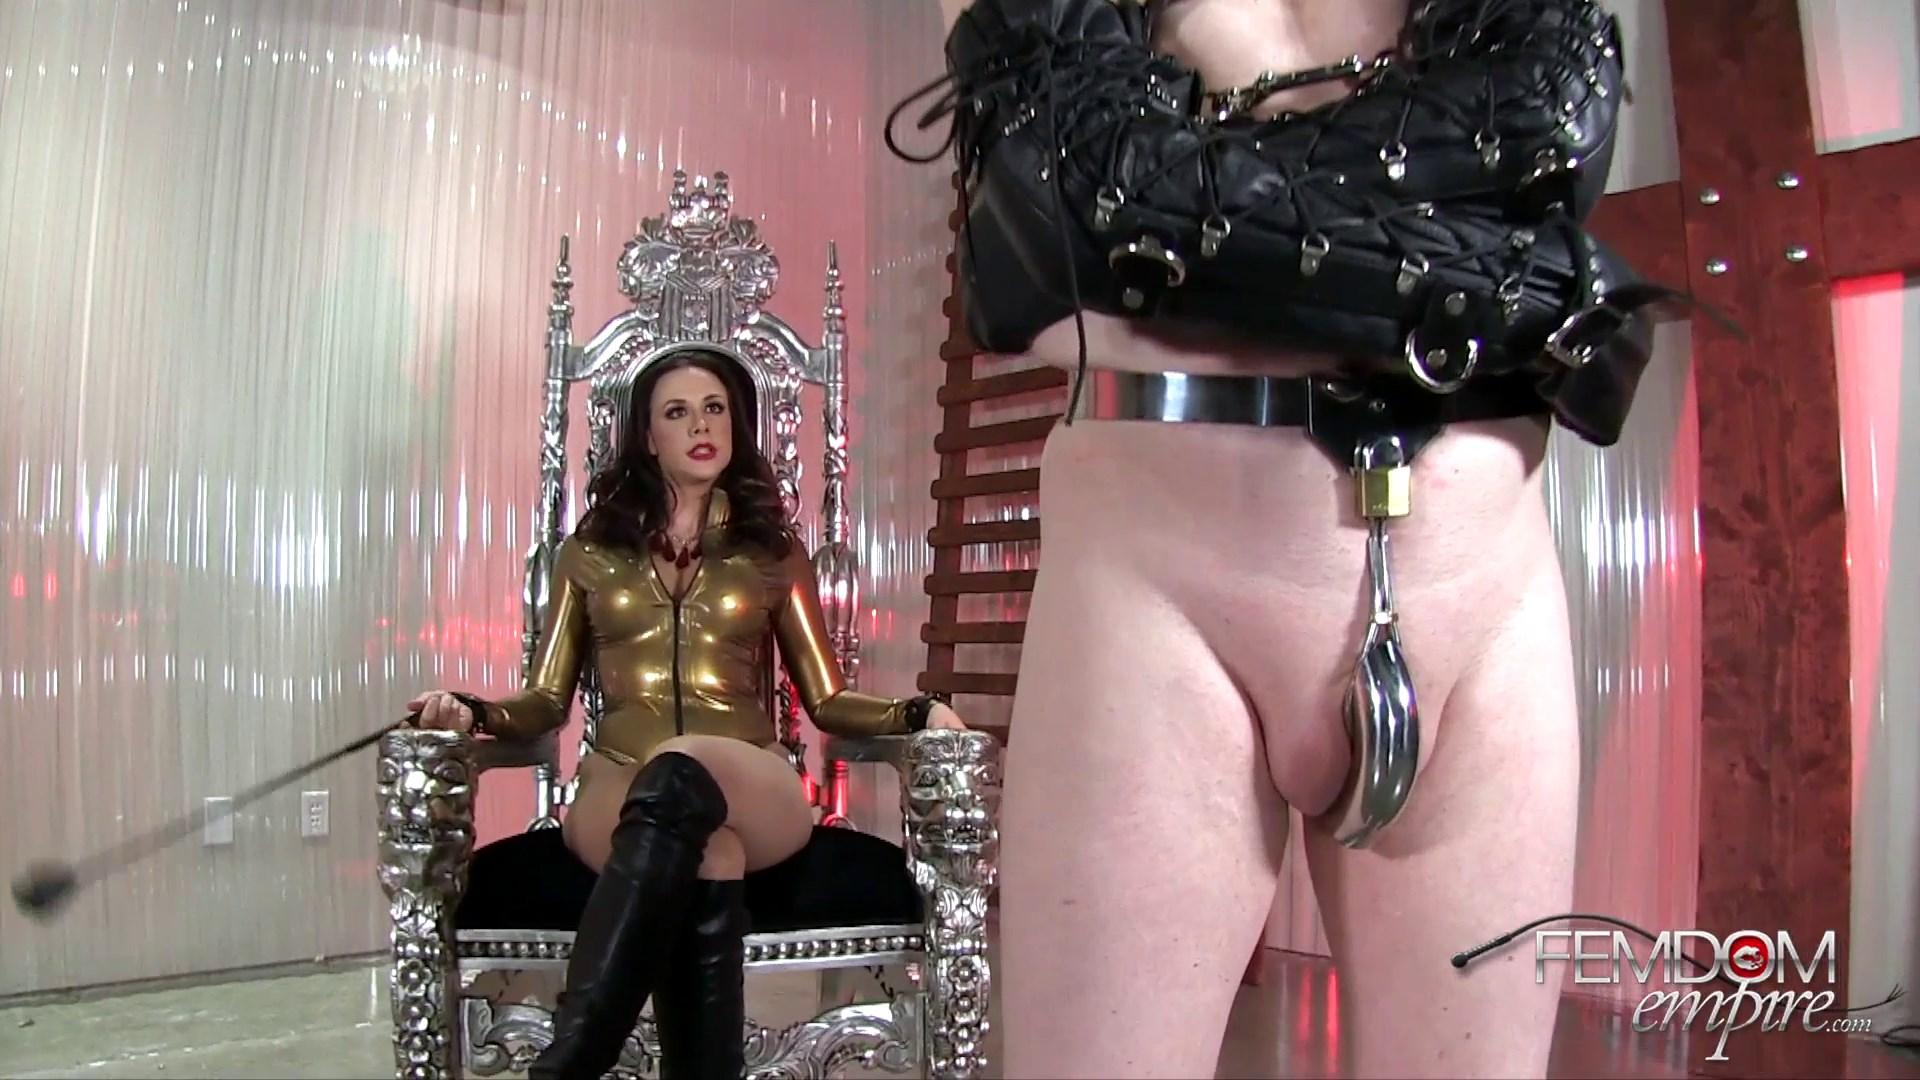 Meatball reccomend Extreme female domination stories